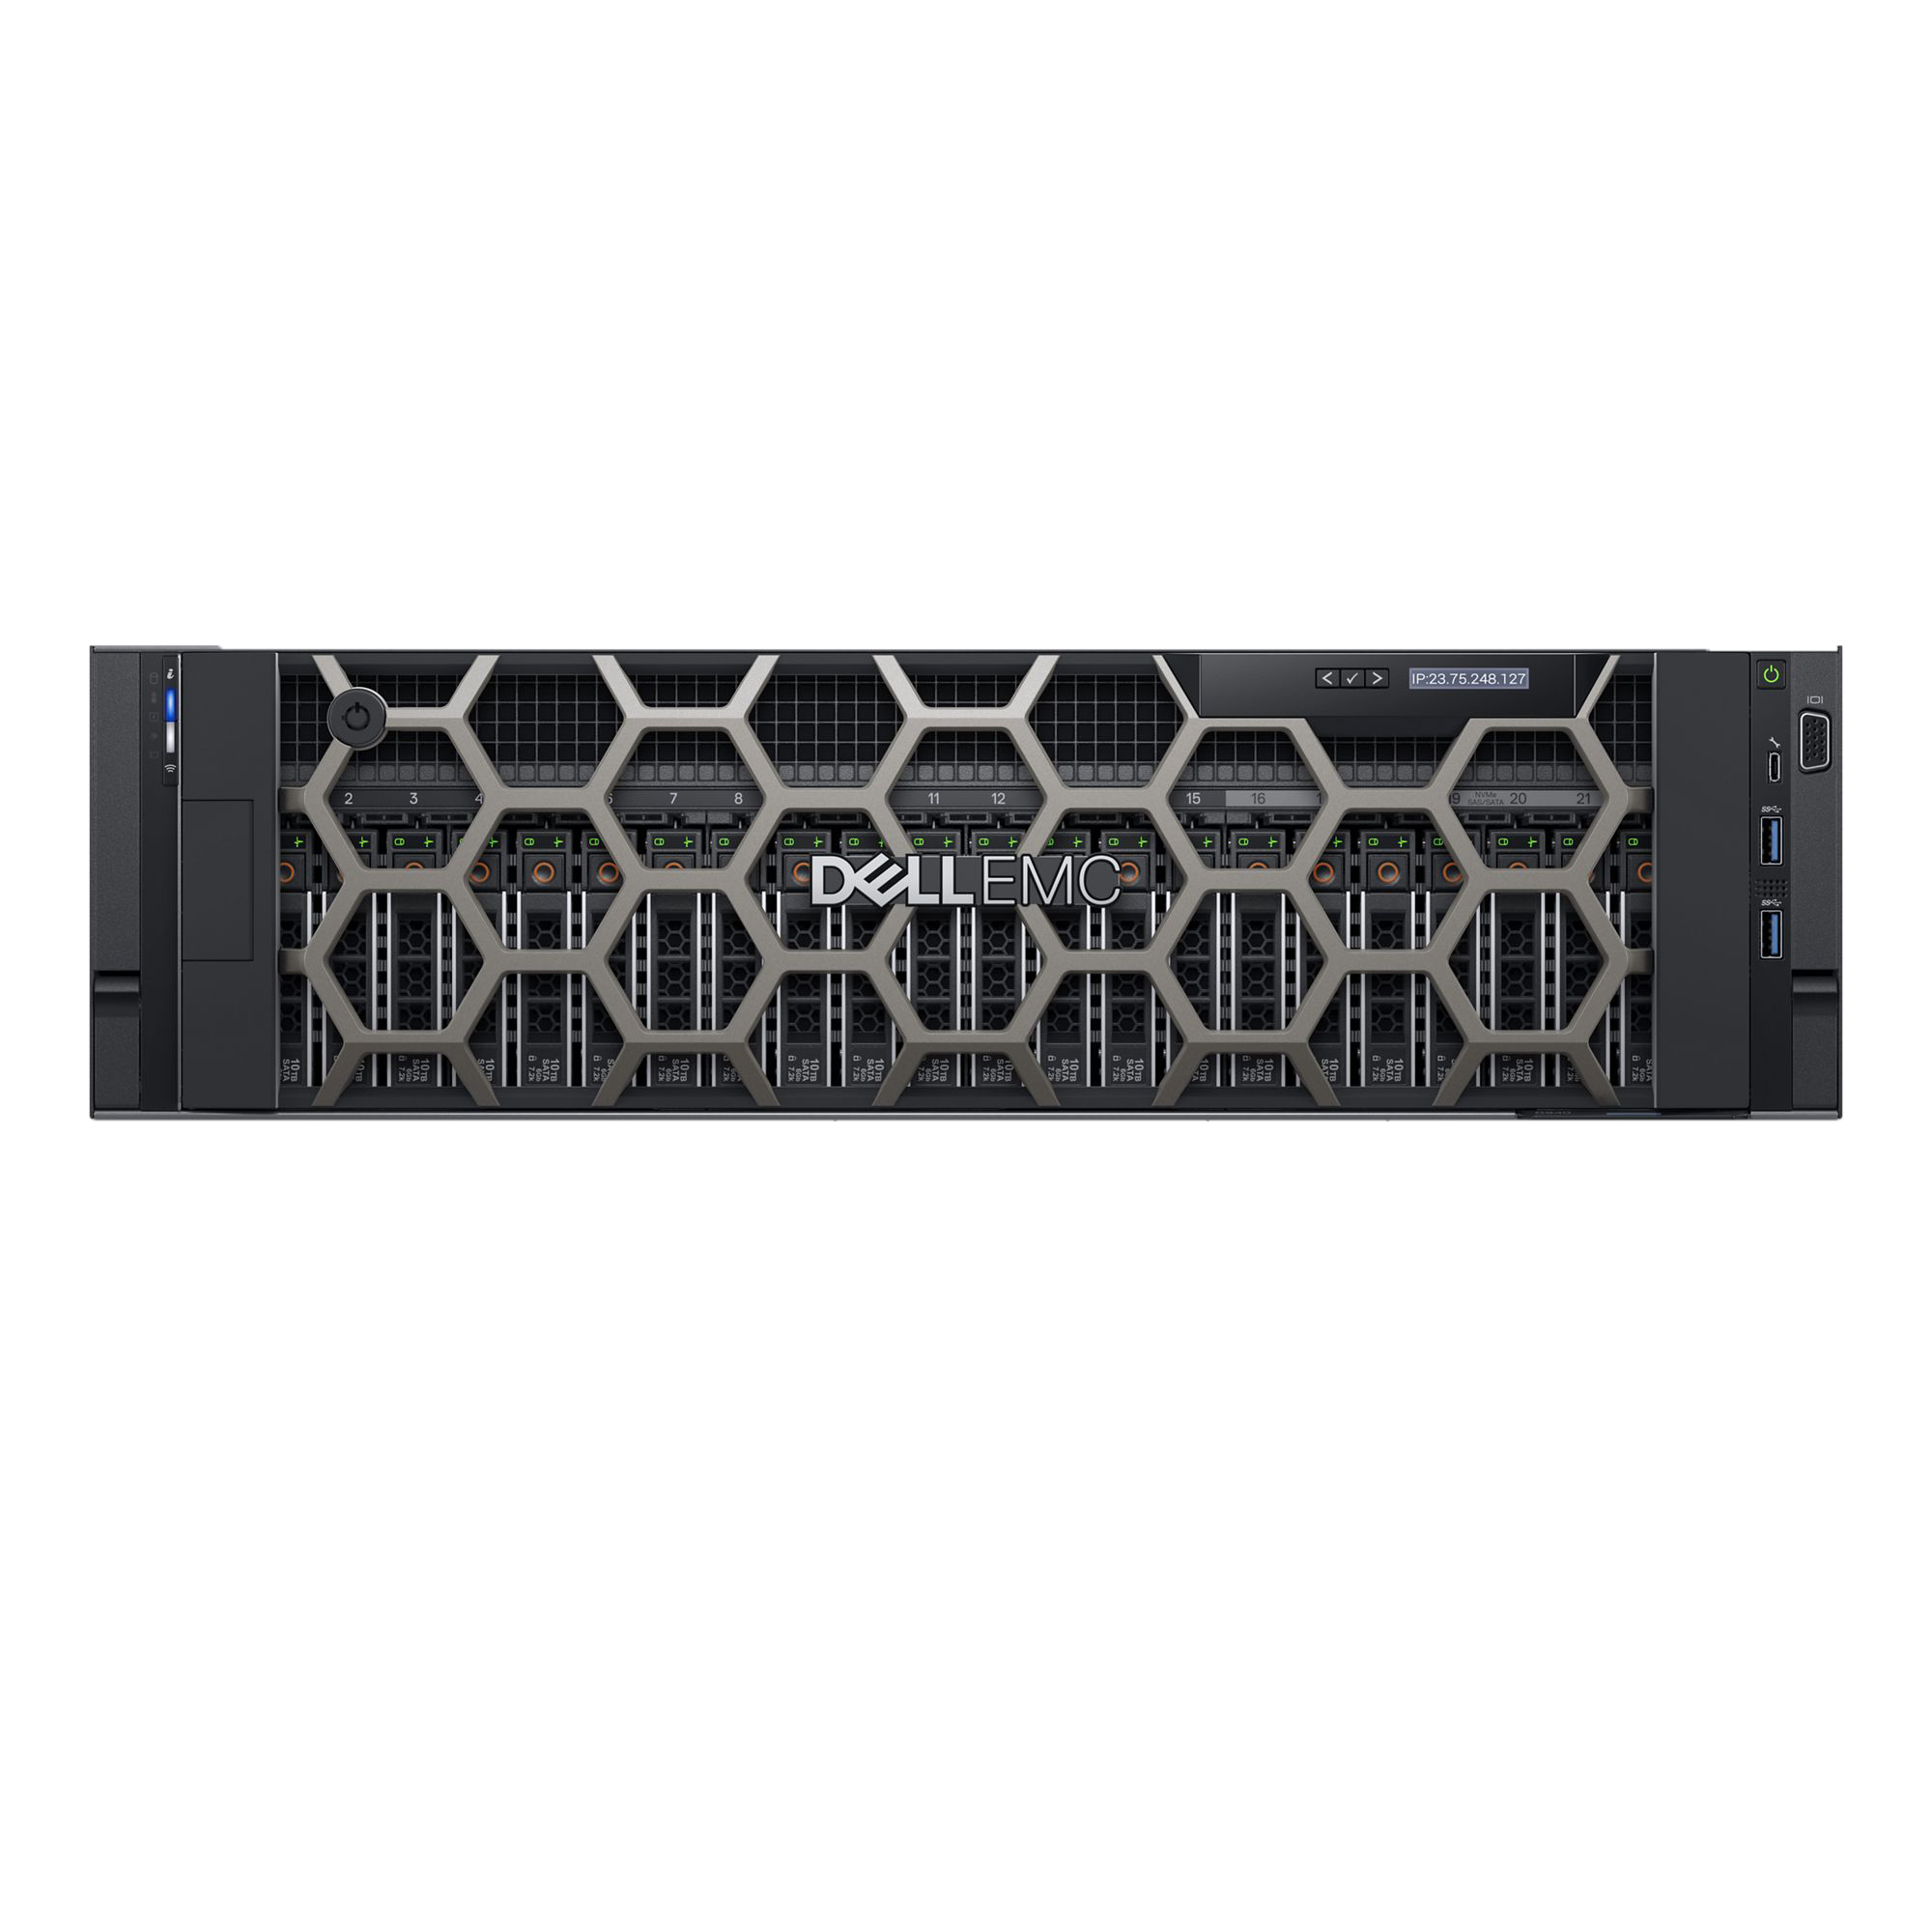 Image for PowerEdge R940